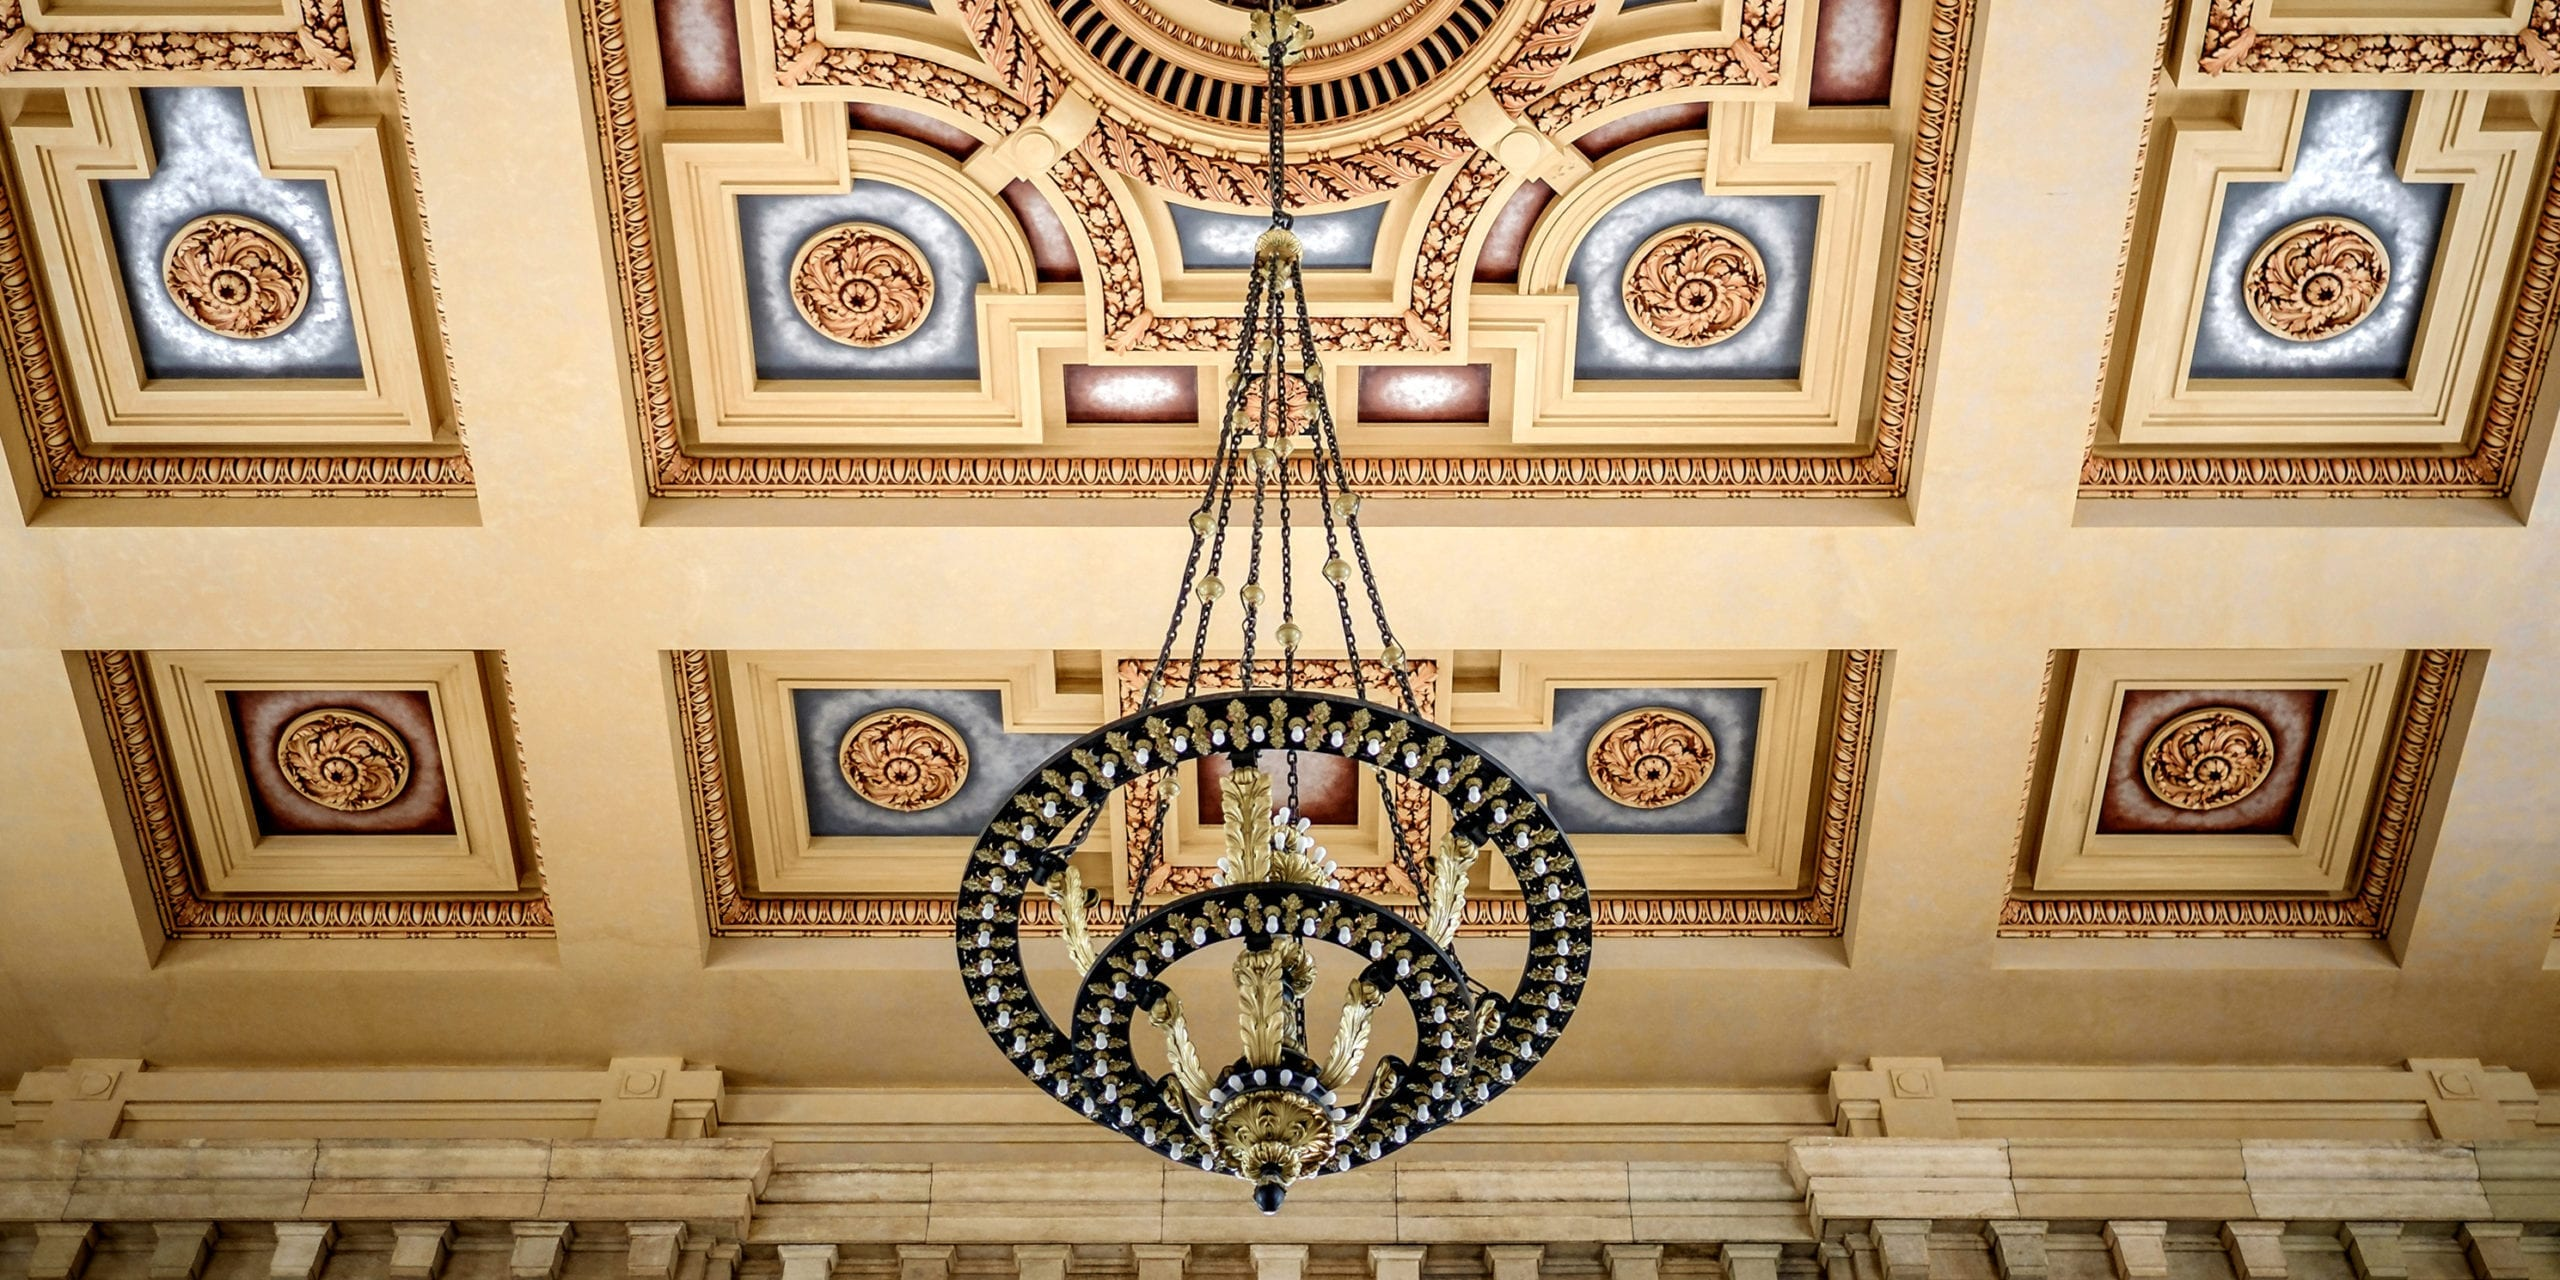 The ceiling of Kansas City's Union Station. Photo by Flickr user Luca Sartoni.